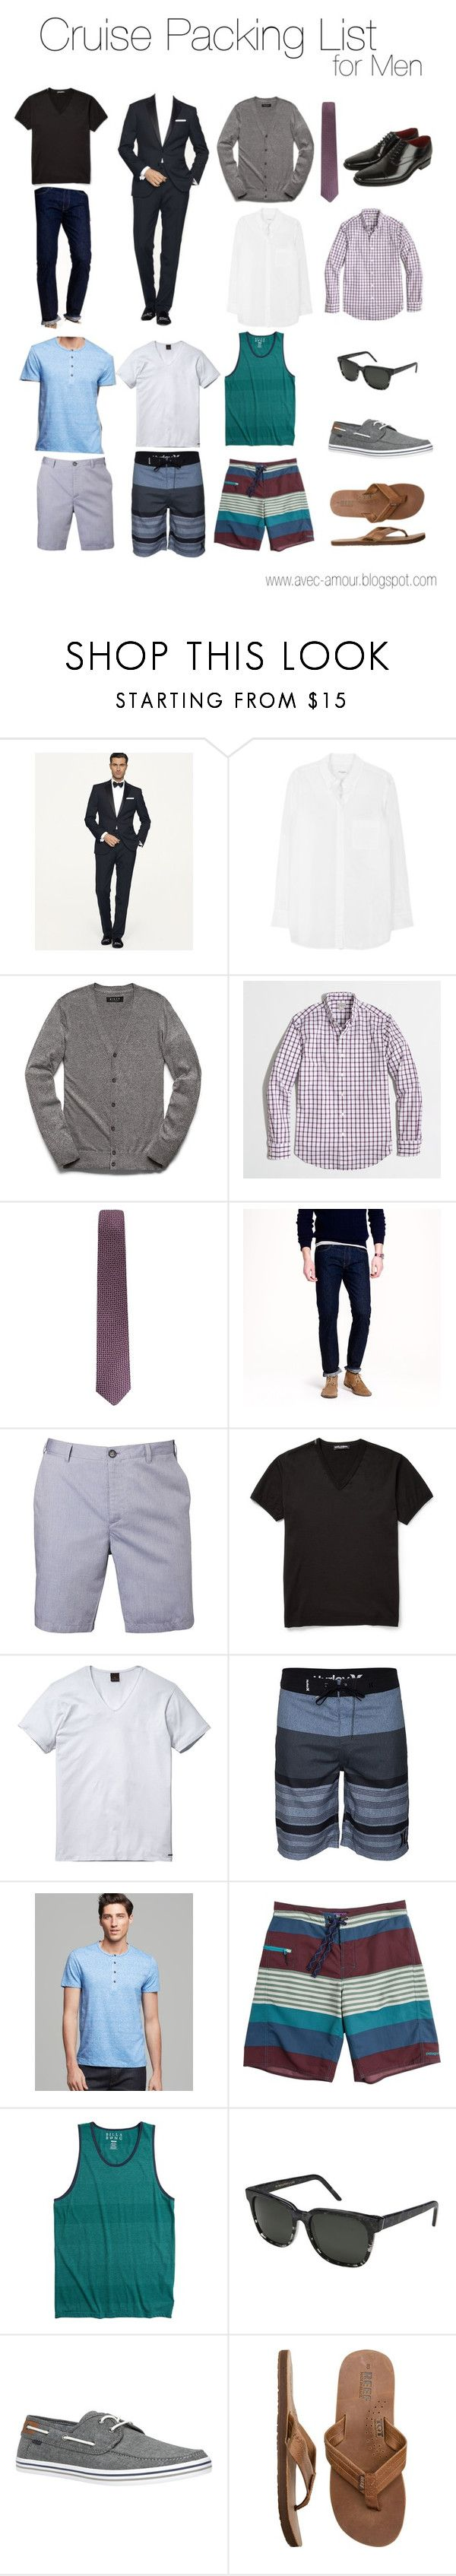 Men's Cruise Packing List by reneecutaia on Polyvore featuring Equipment, RetroSuperFuture, Ralph Lauren, J.Crew, Hurley, 21 Men, BOSS Hugo Boss, Scotch & Soda, Patagonia and Billabong